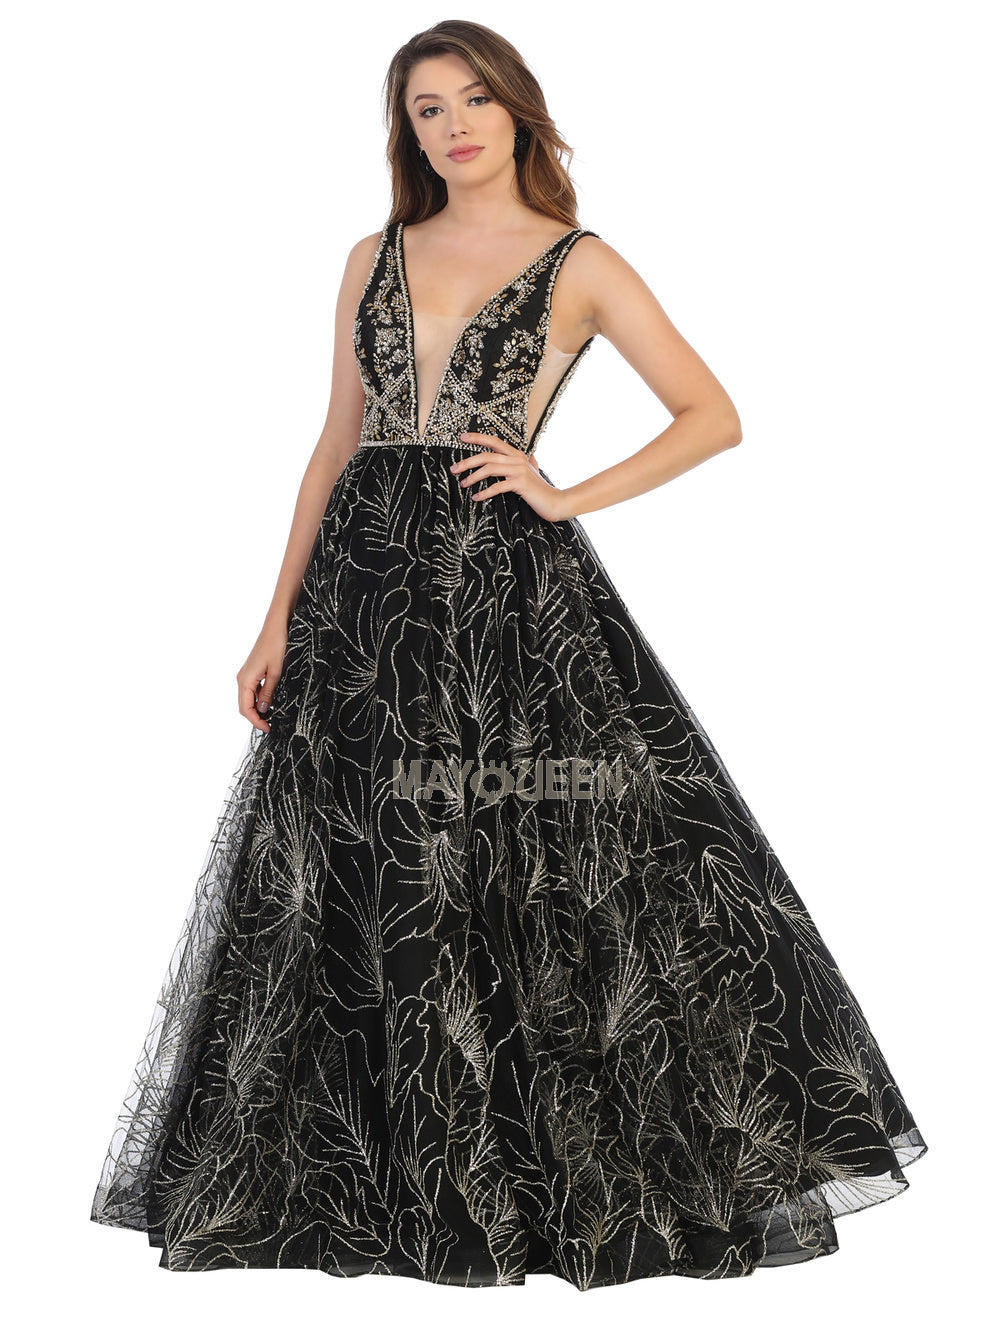 MQ 7780 - A-Line Ball Gown with Illusion V-Neck & Glitter Tulle Skirt